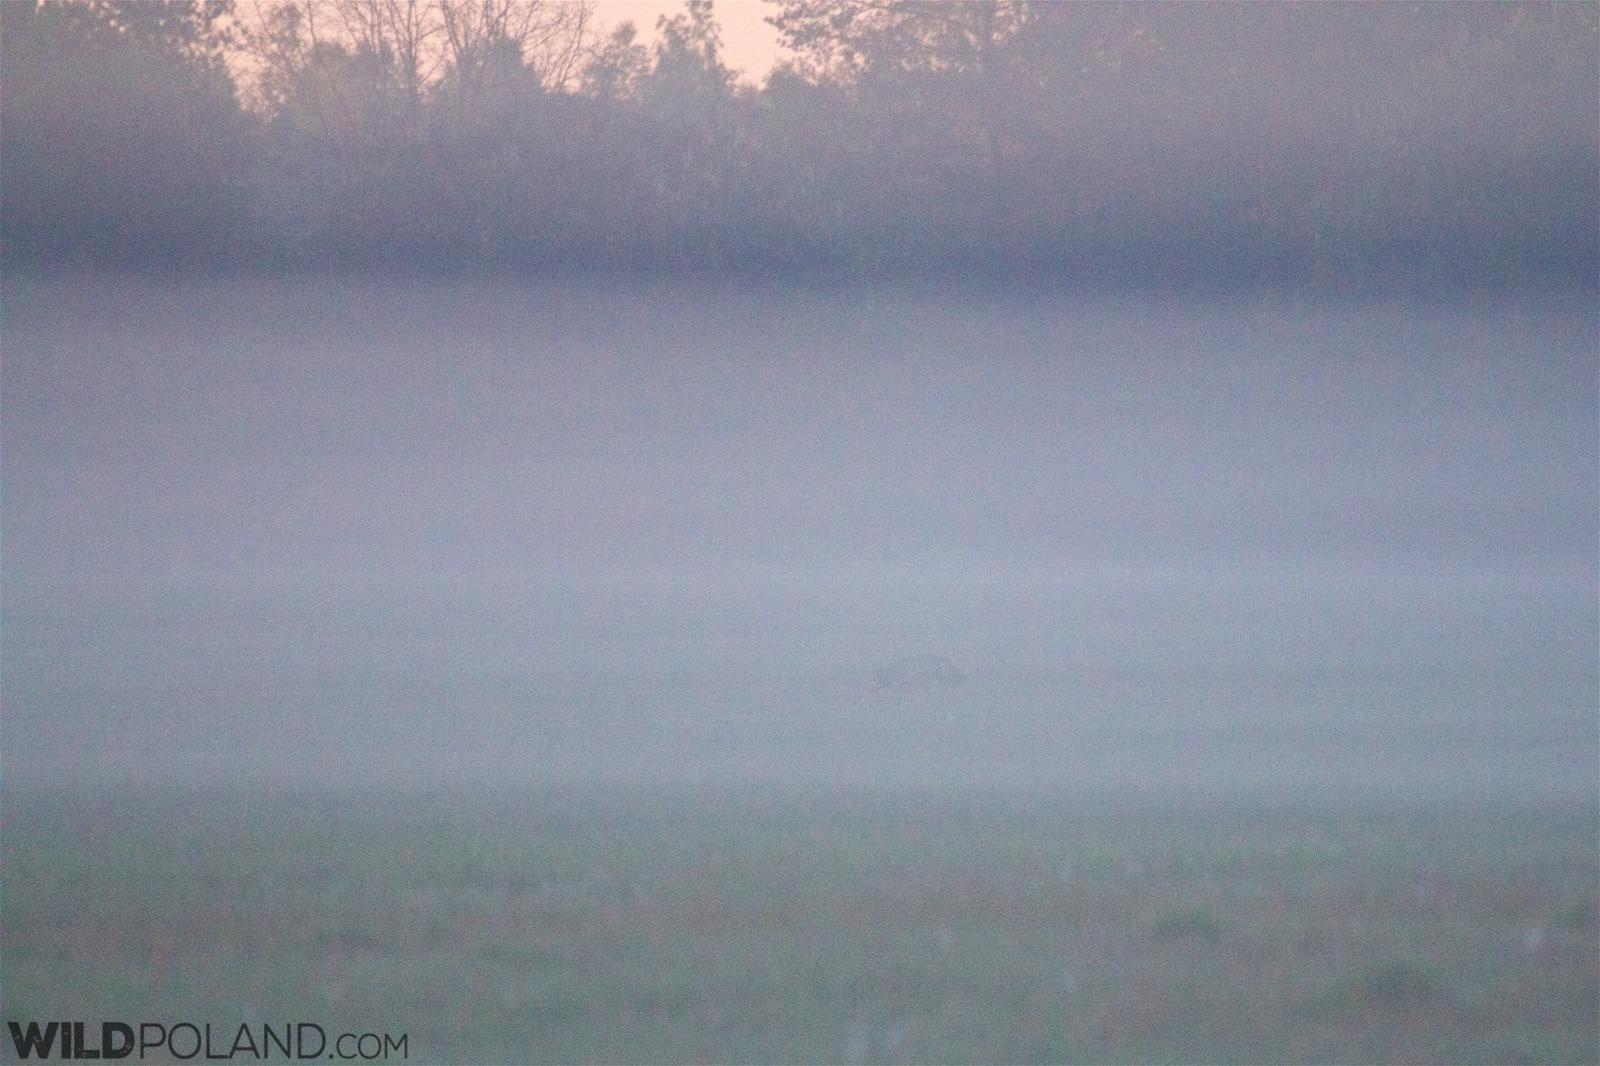 Wolf in the fog at dawn in the Białowieża Forest